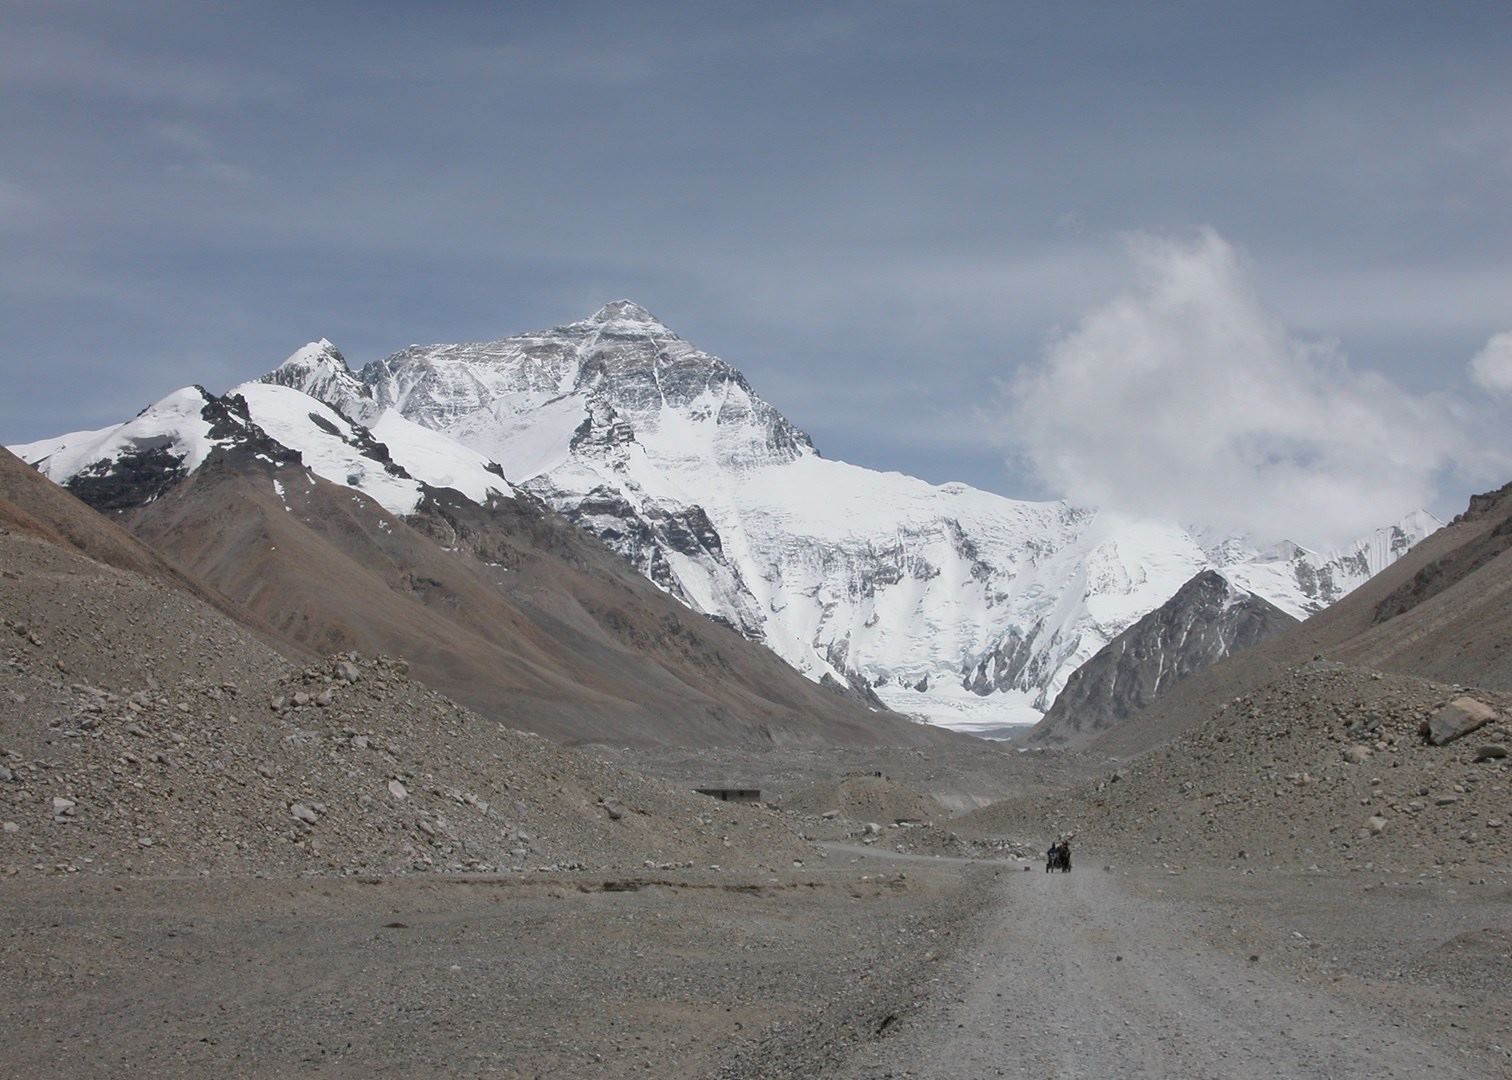 highway to everest mount - photo #18